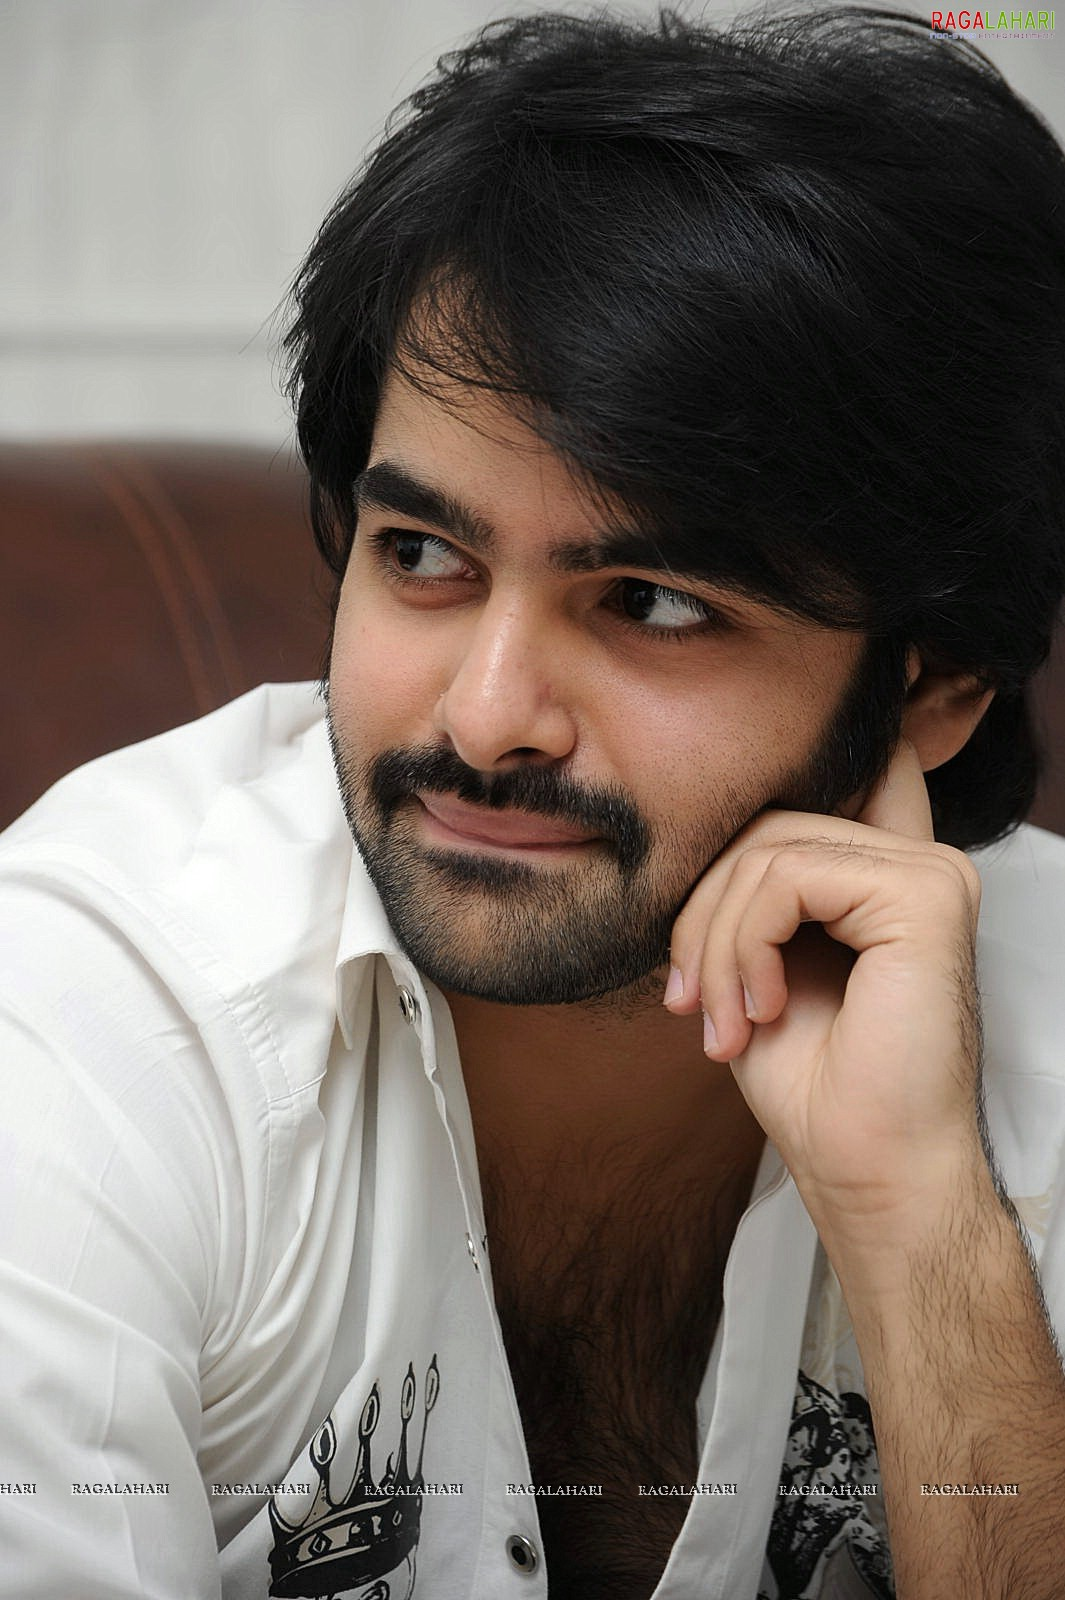 ram image 17 tollywood actor gallery photoshoot wallpapers